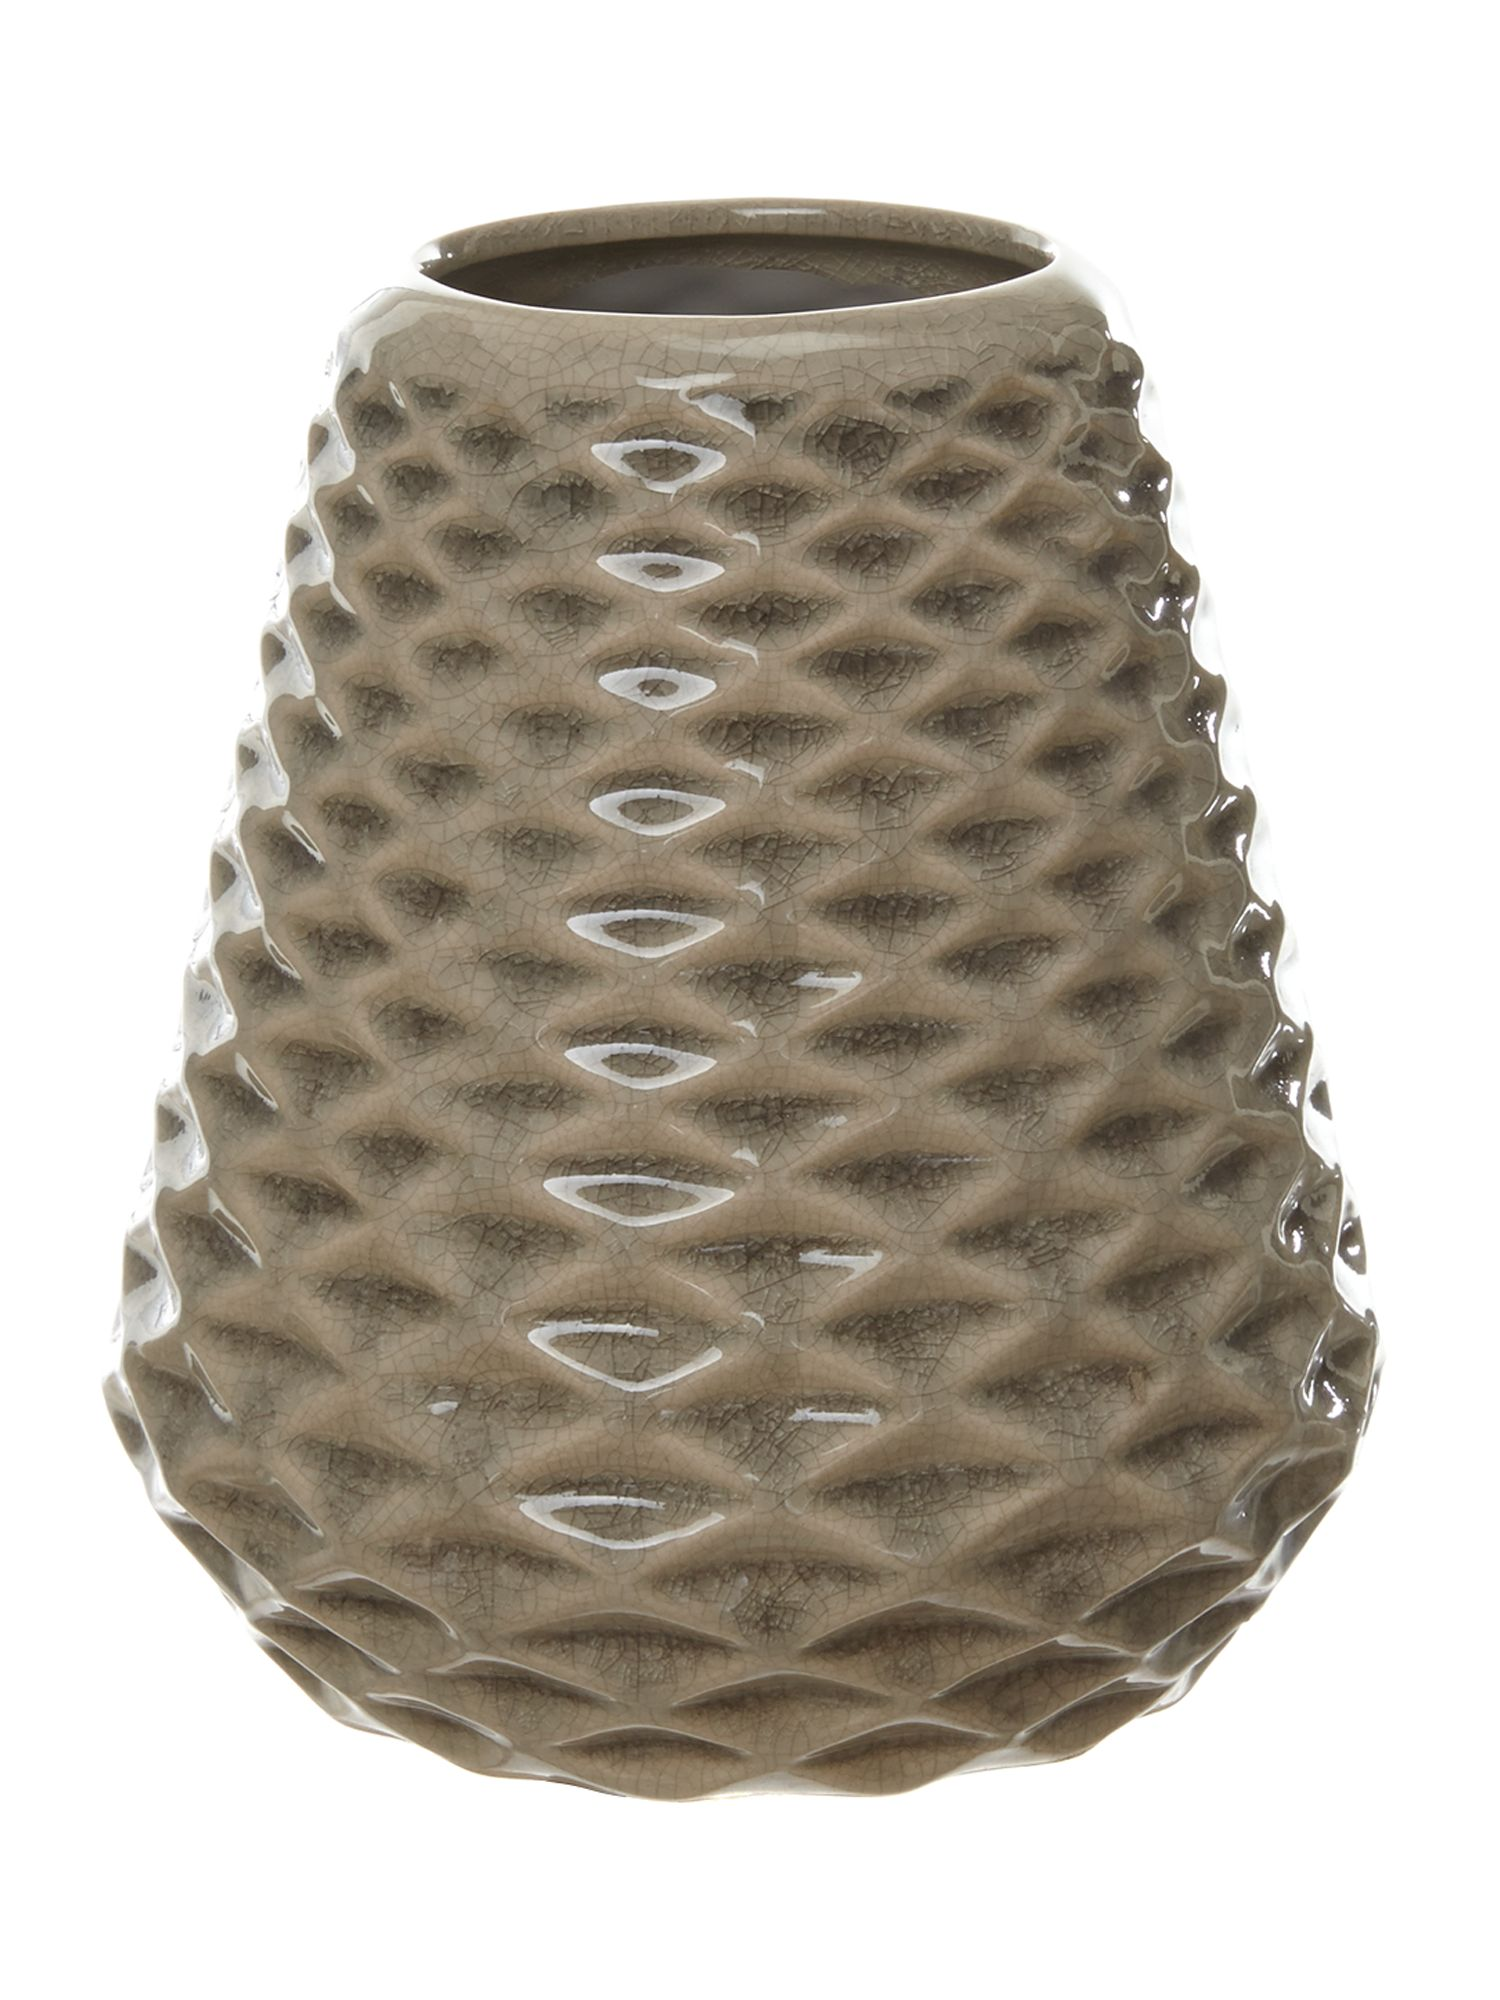 Small Conical ceramic Vase in rainy day